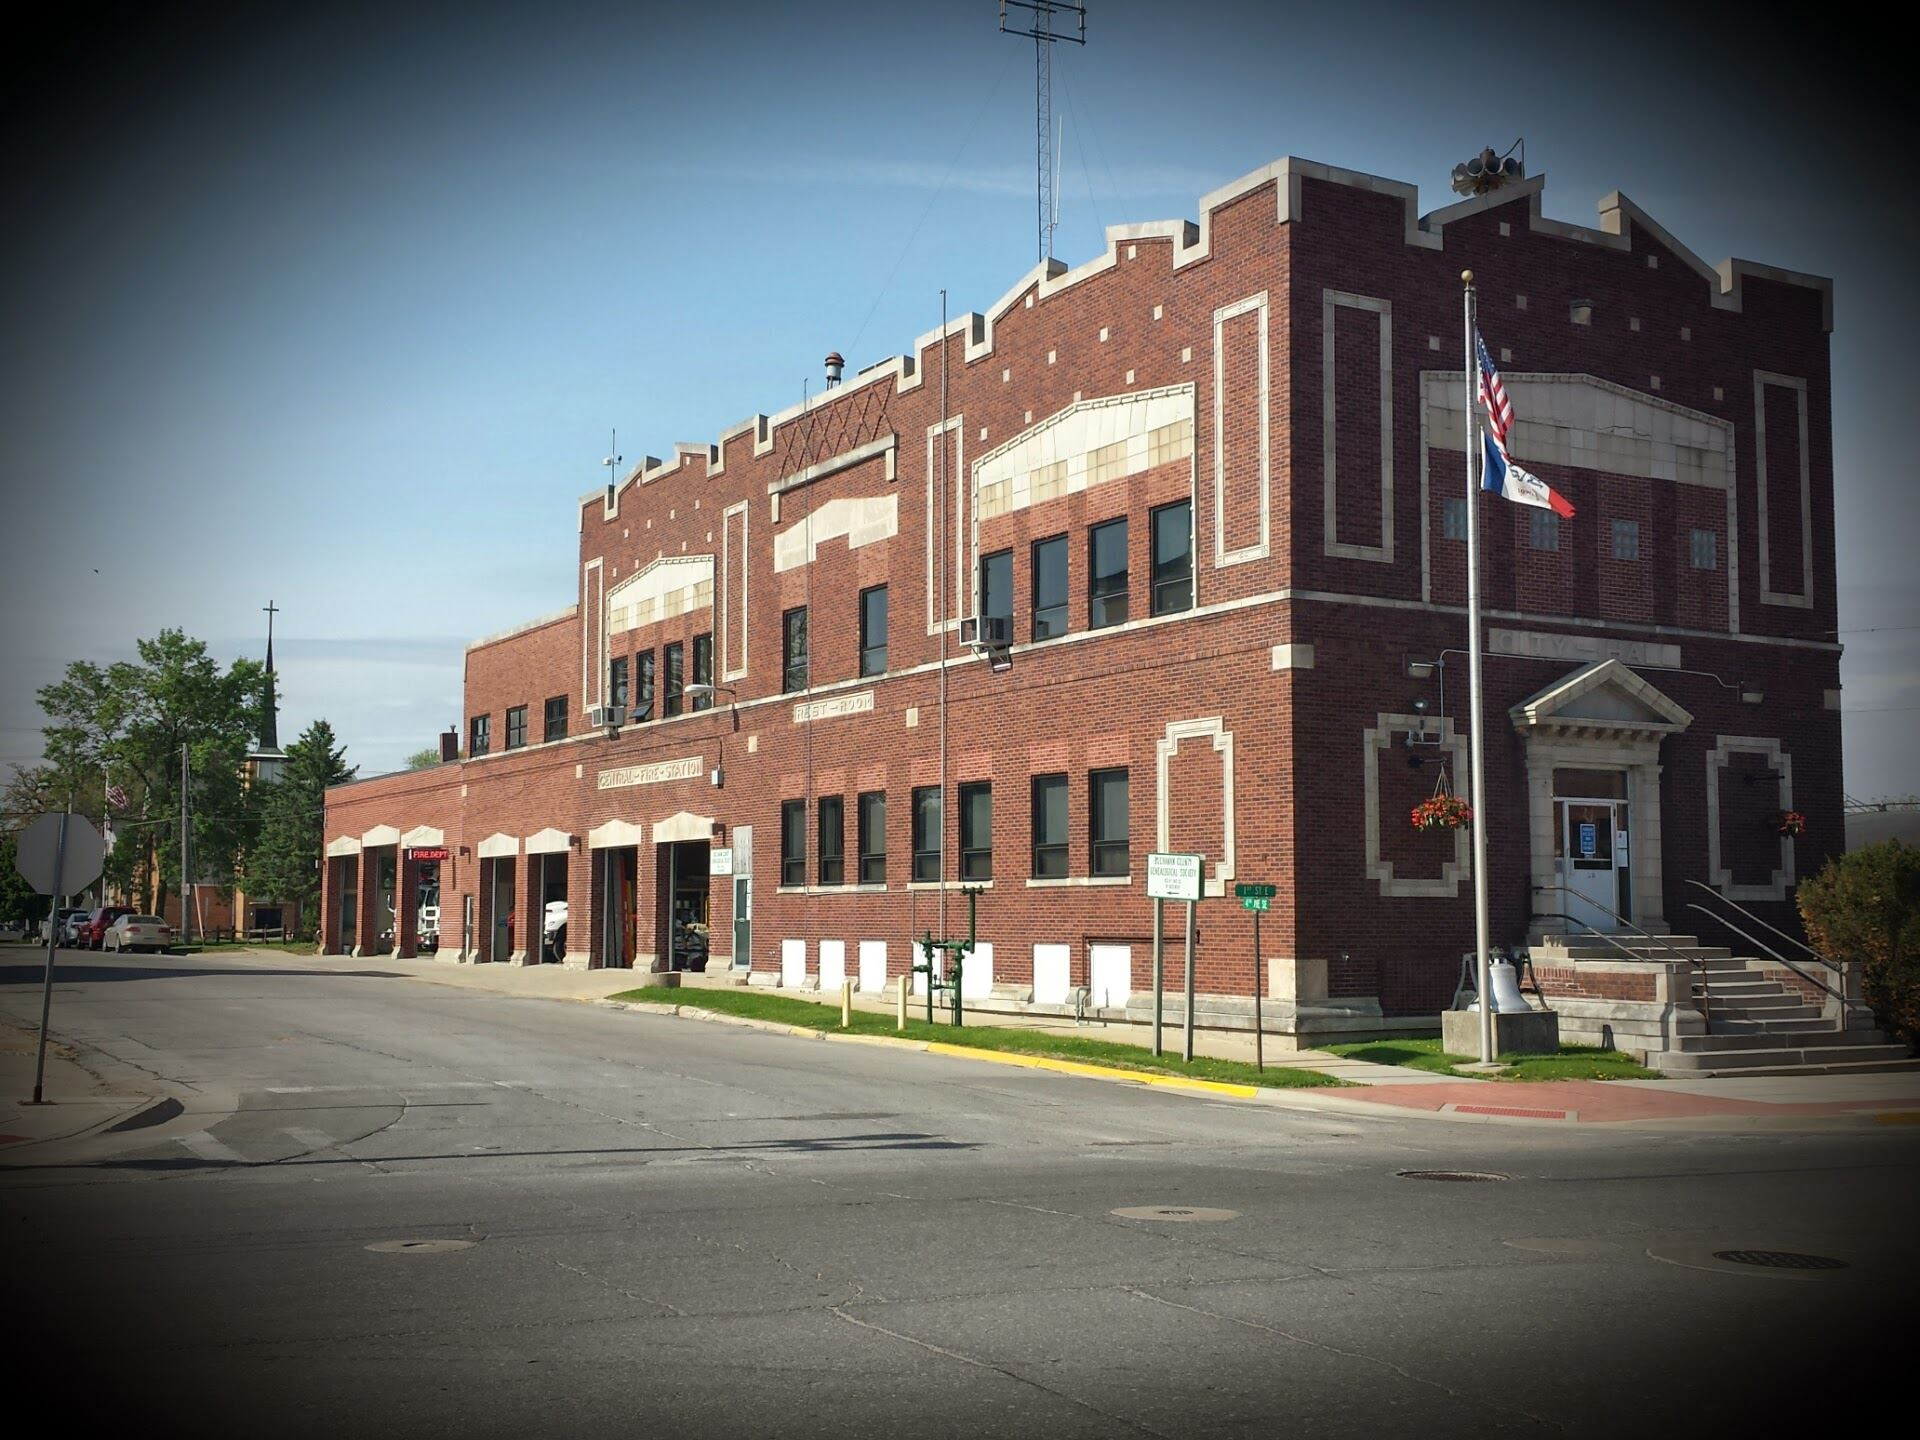 Fire Station / City Hall